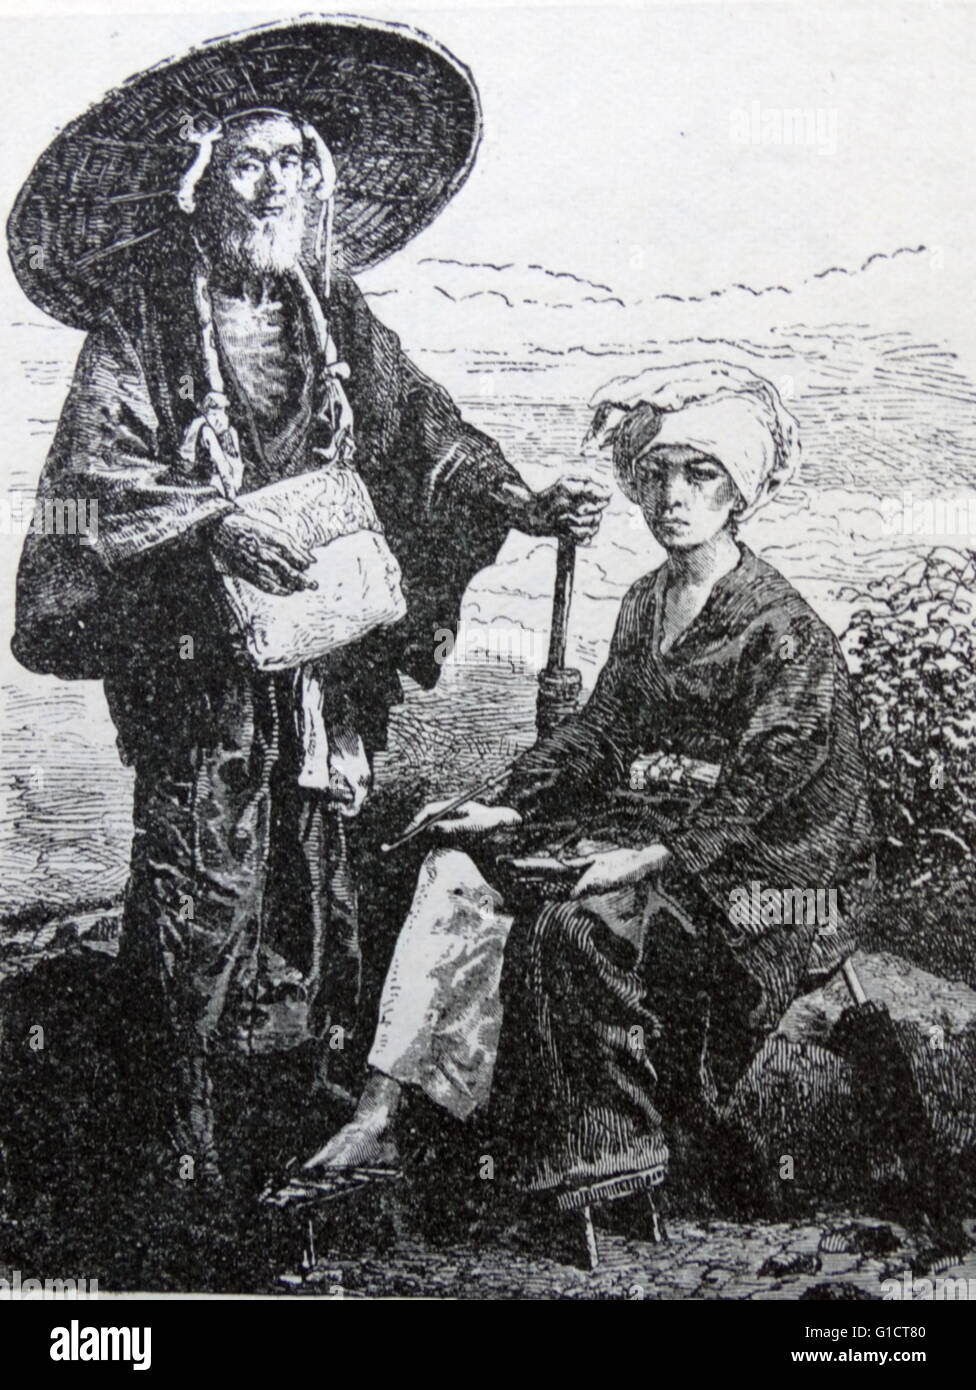 Engraving depicting a Japanese man on a pilgrimage - Stock Image